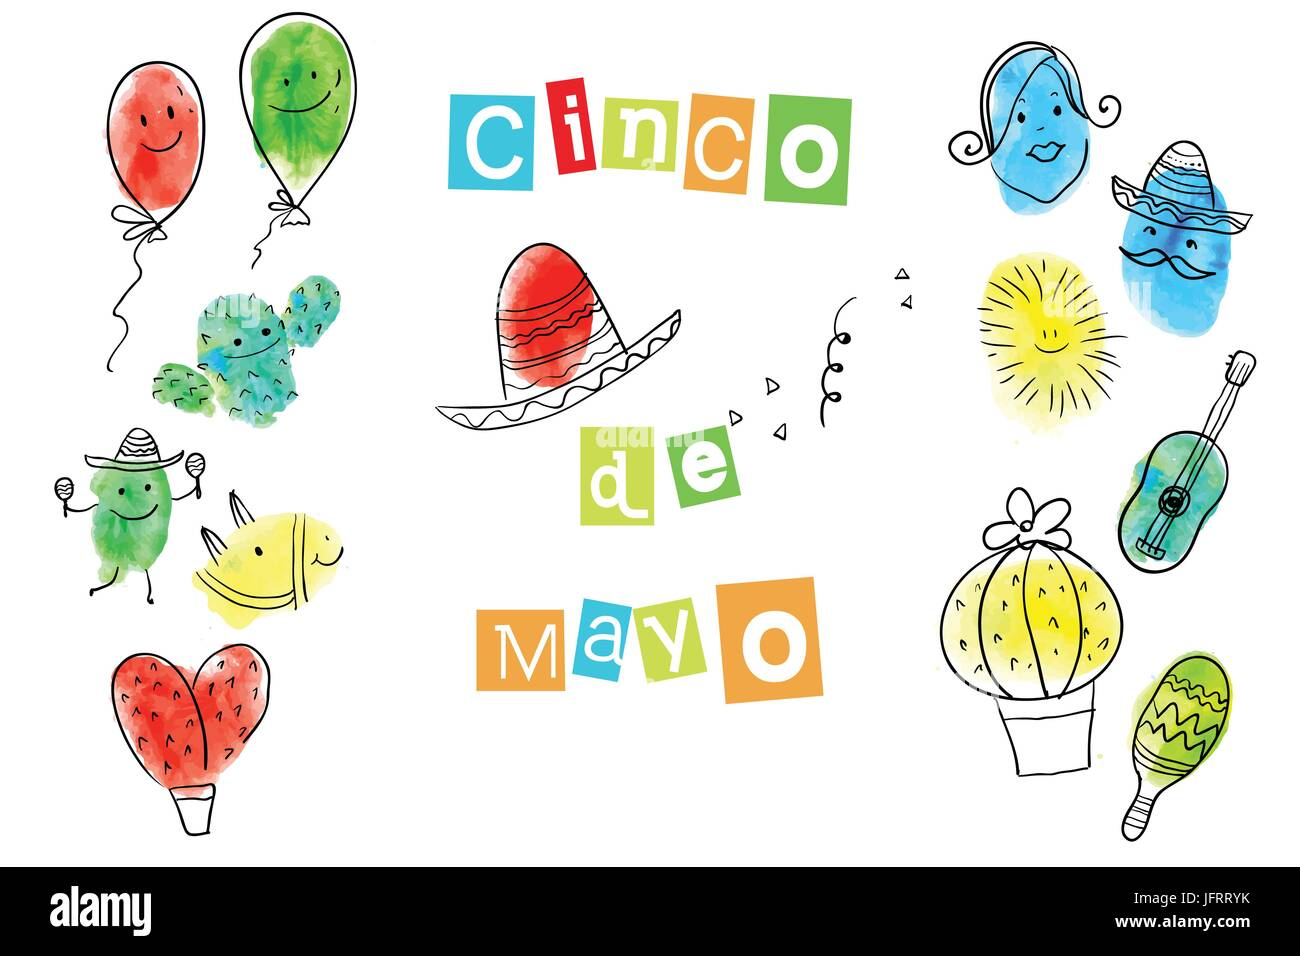 Greeting card of the cinco de mayo day stock vector art greeting card of the cinco de mayo day m4hsunfo